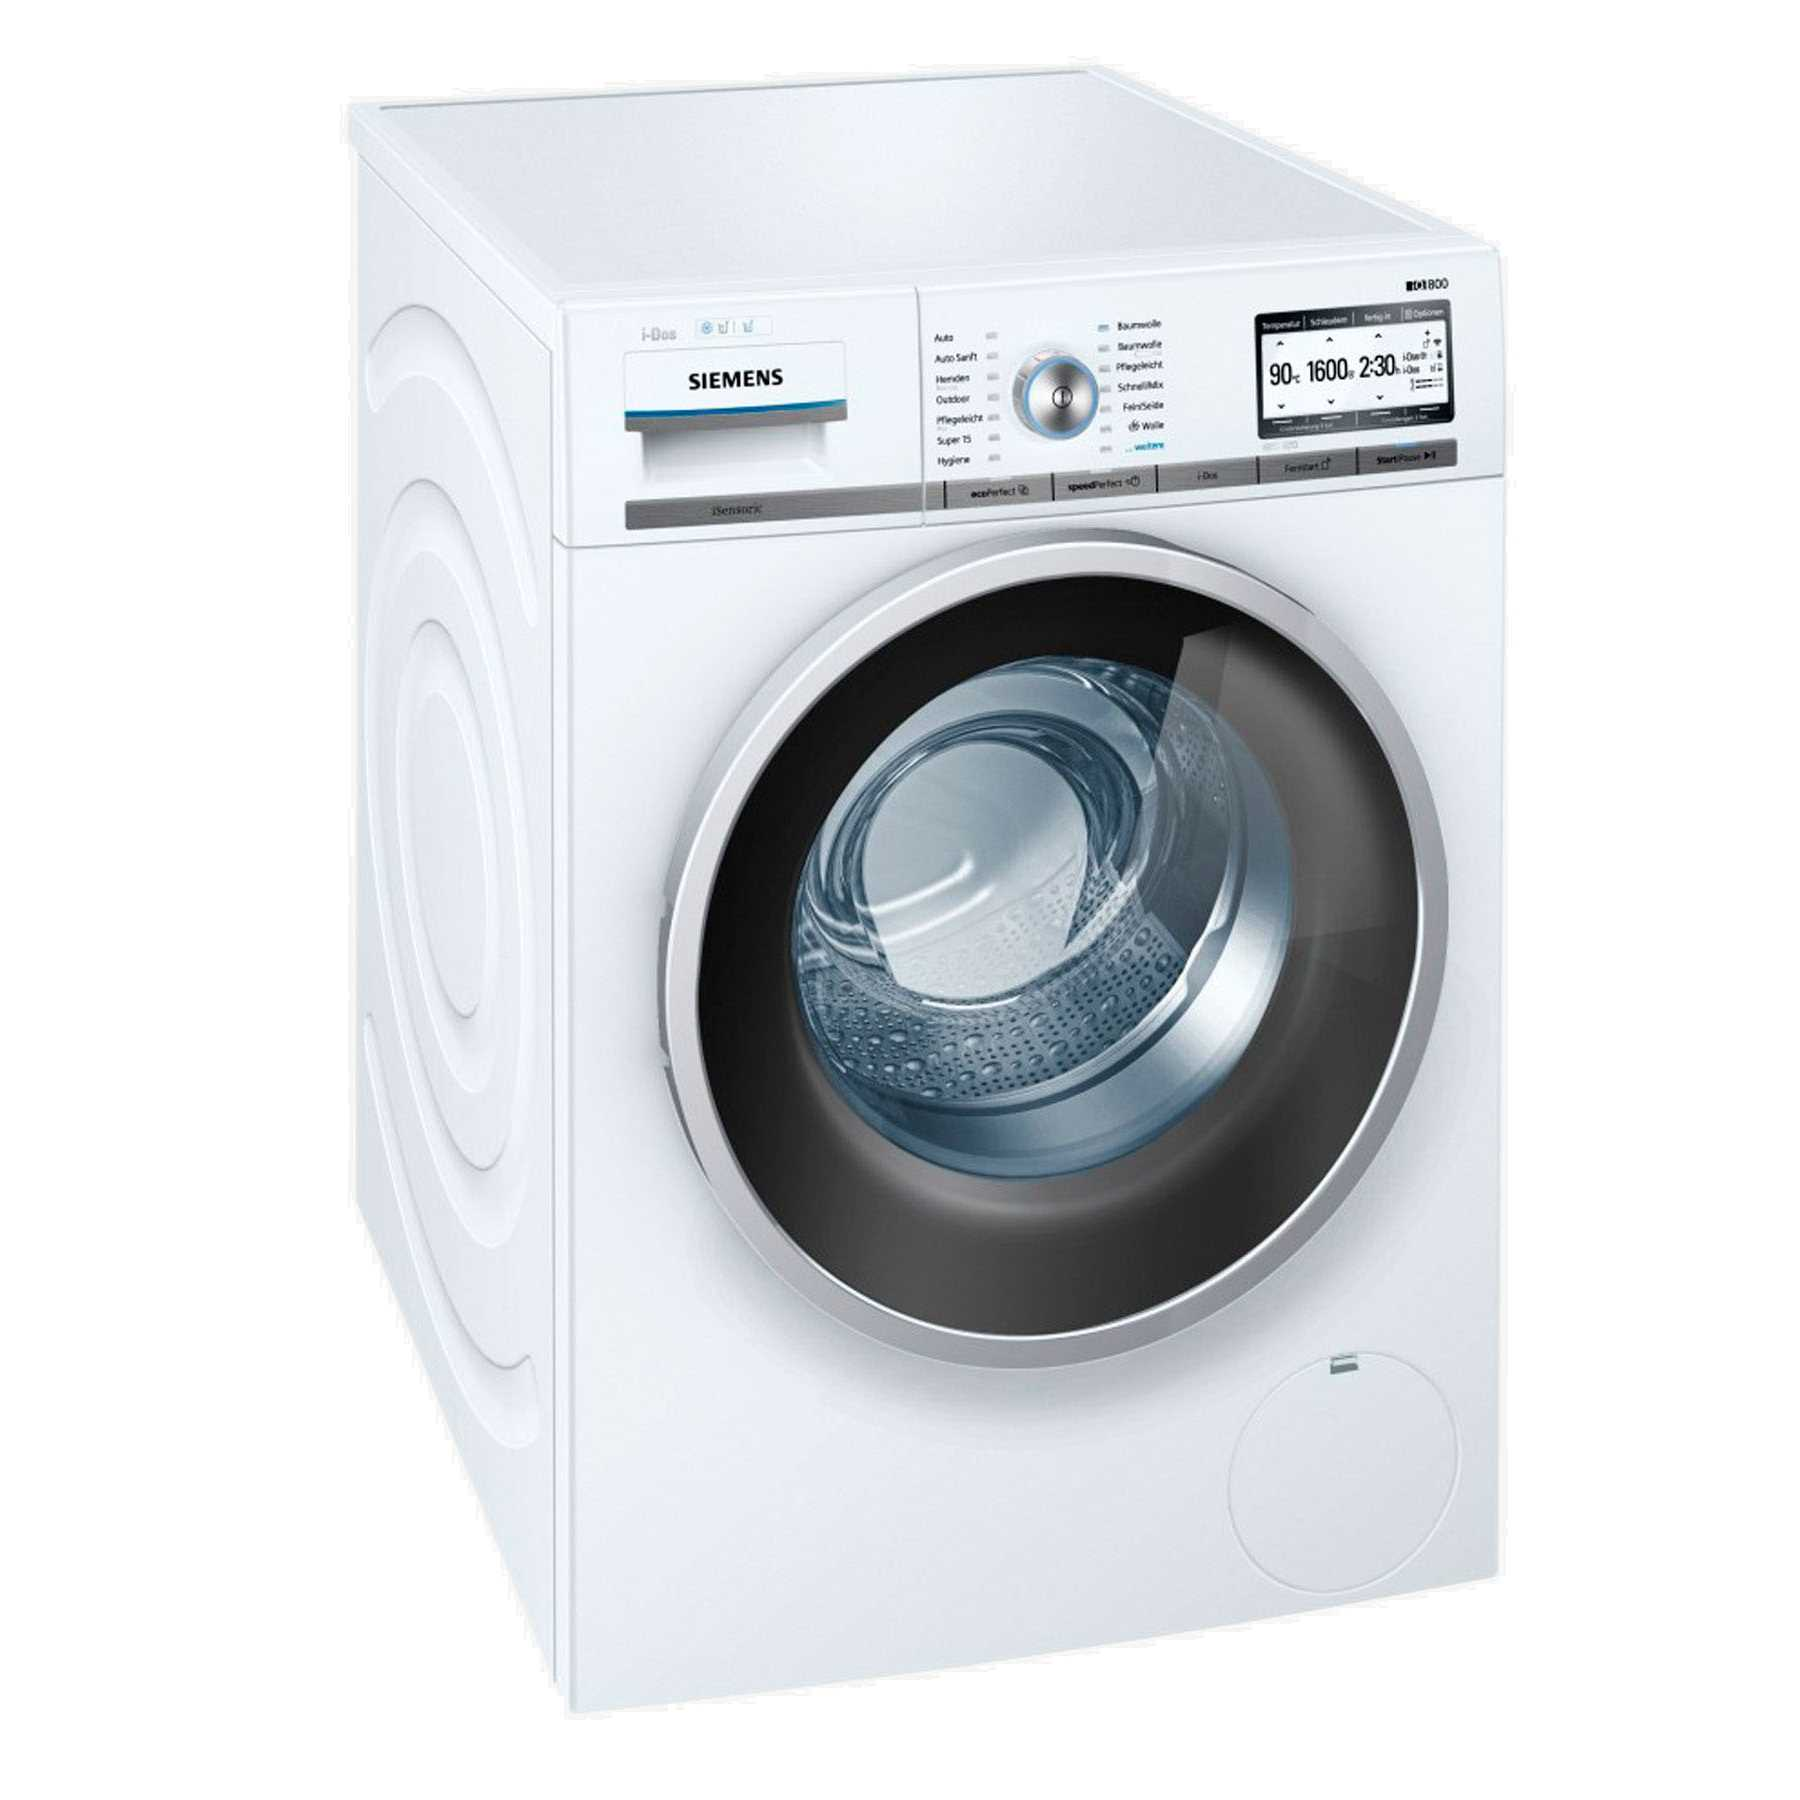 Siemens WM12T460IN 8 Kg Fully Automatic Front Loading Washing Machine